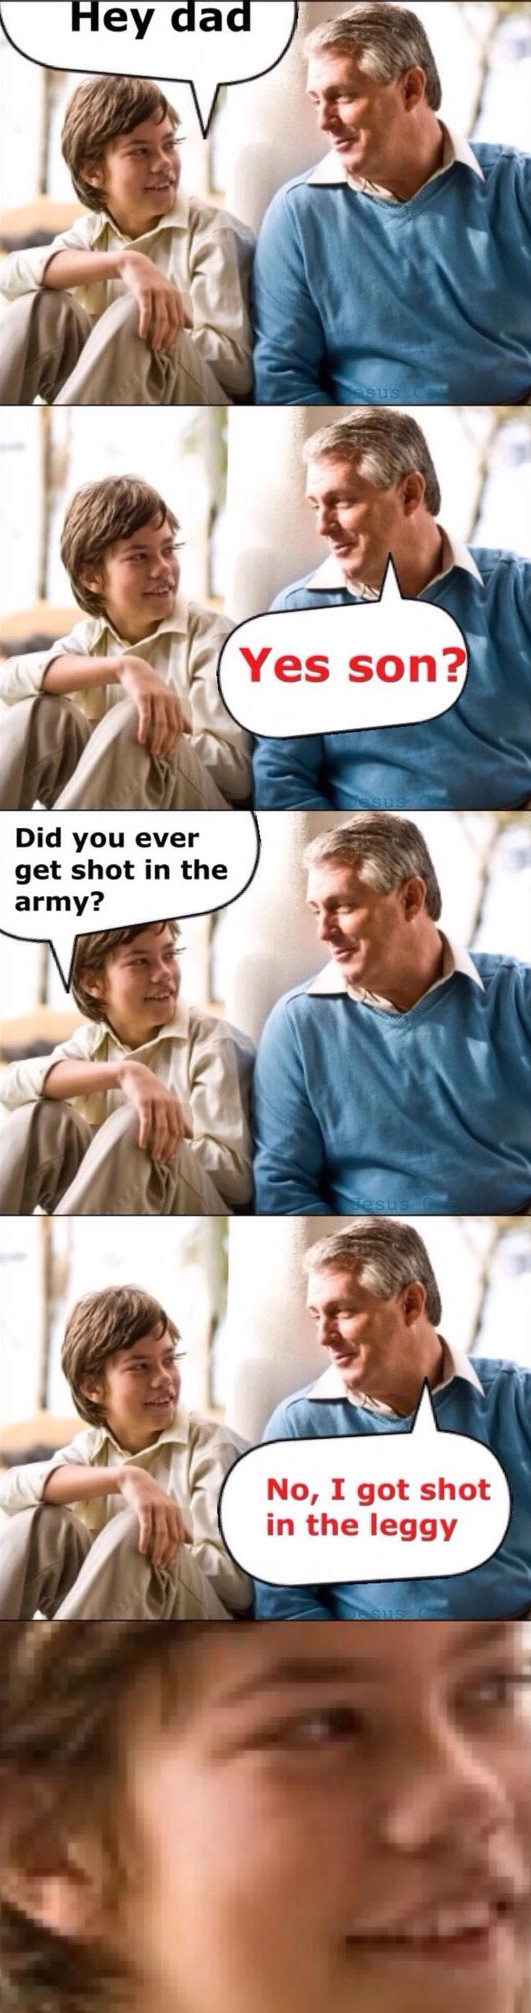 funny-dad-son-pun-army